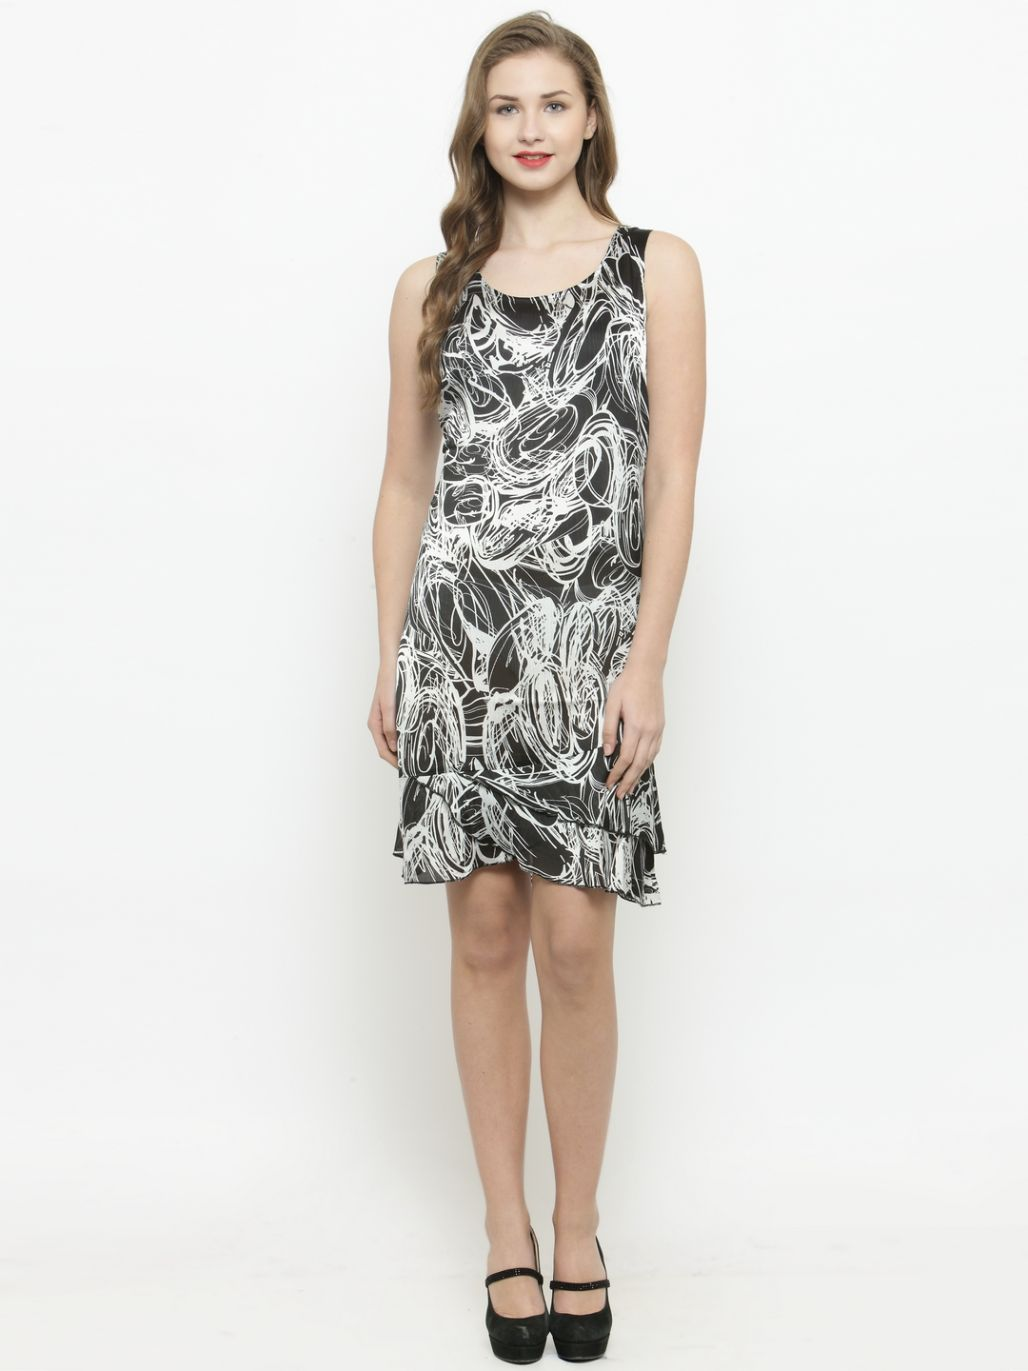 Querida Black / White Printed Uneven Bottom Dress